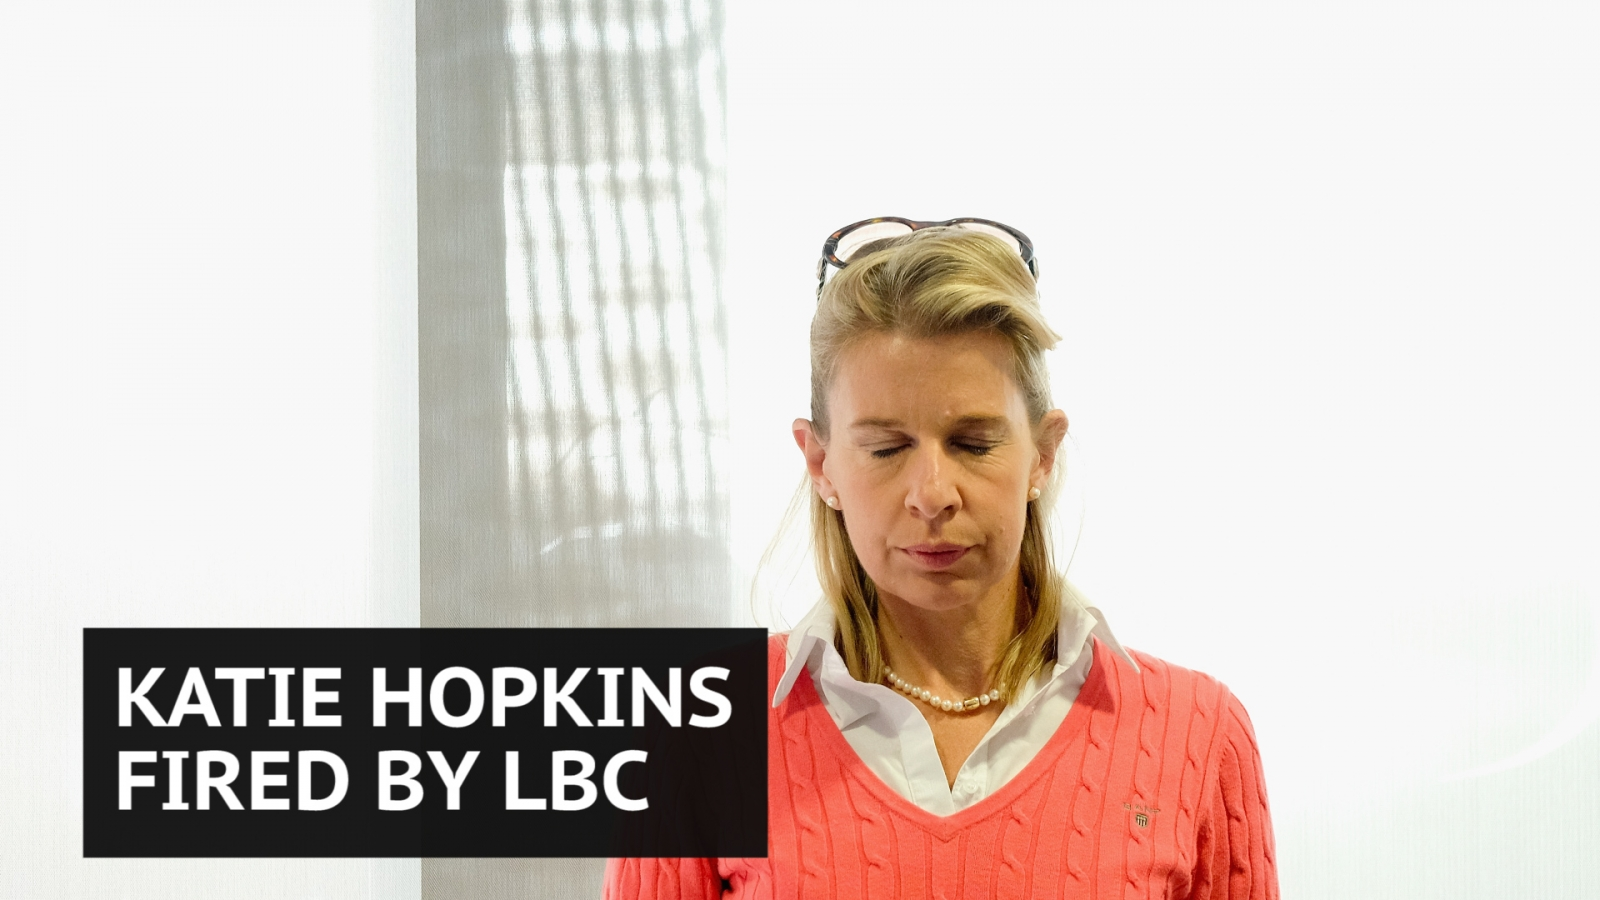 katie-hopkins-fired-by-lbc-after-final-solution-tweet